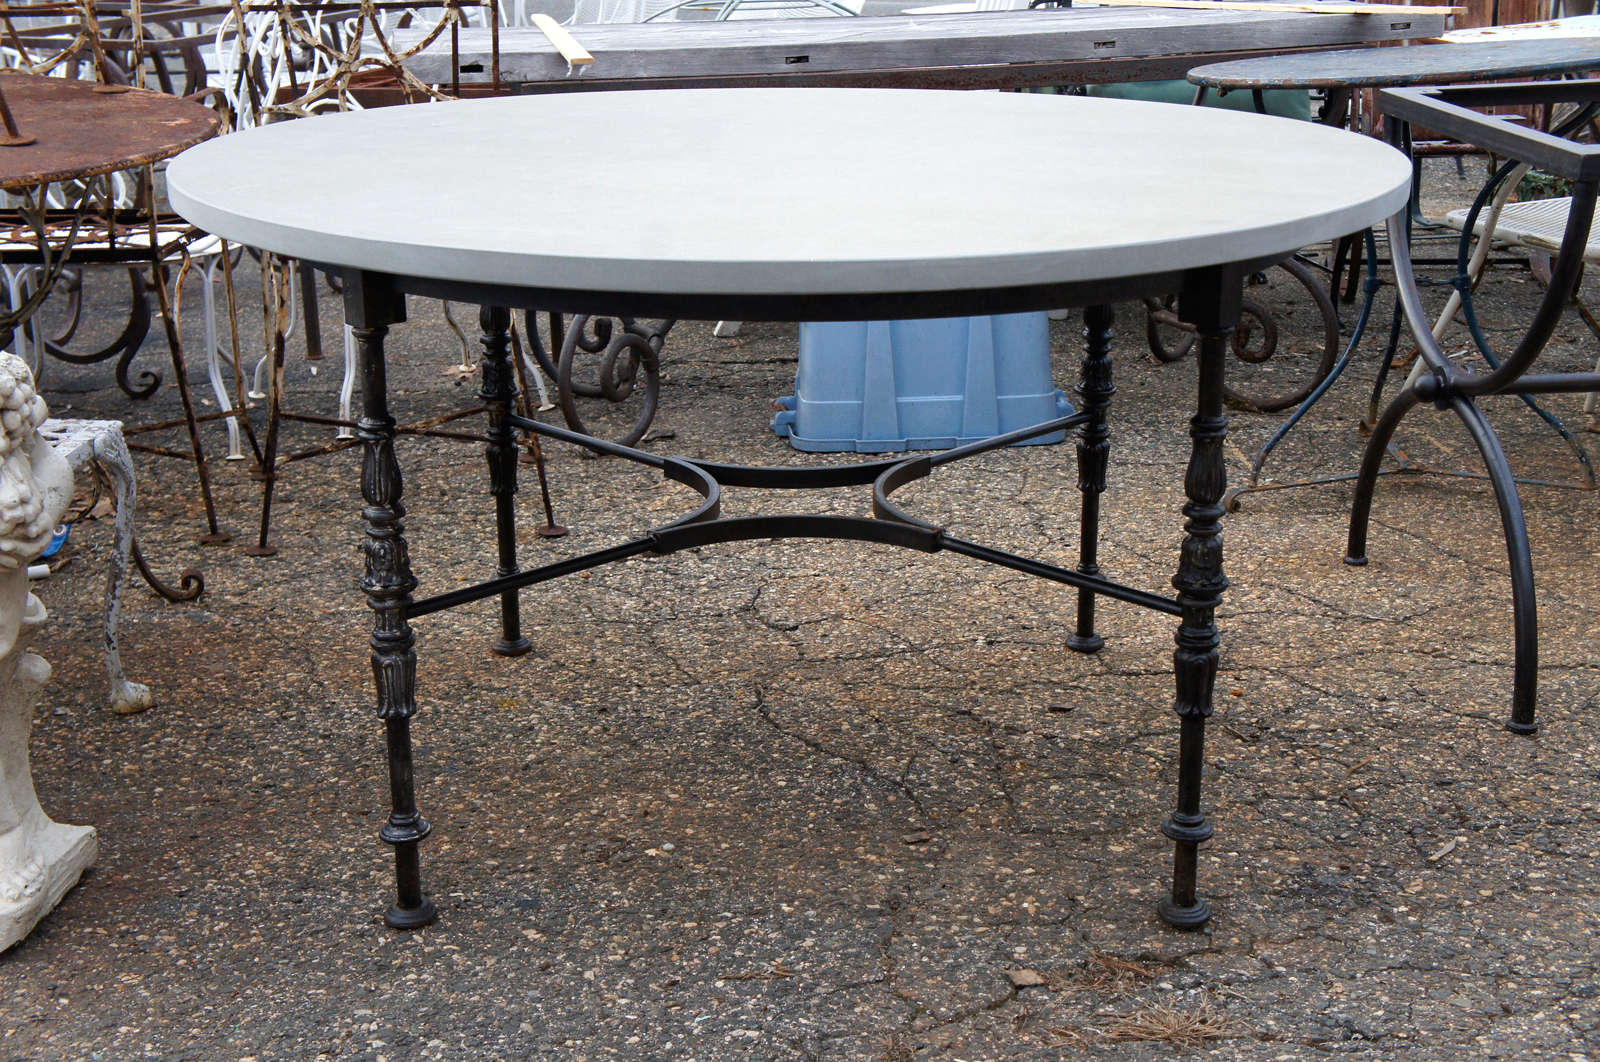 Attrayant Wonderful Iron Base Table With Stone Top. Can Be Used Indoor Or Outdoors.  Perfect